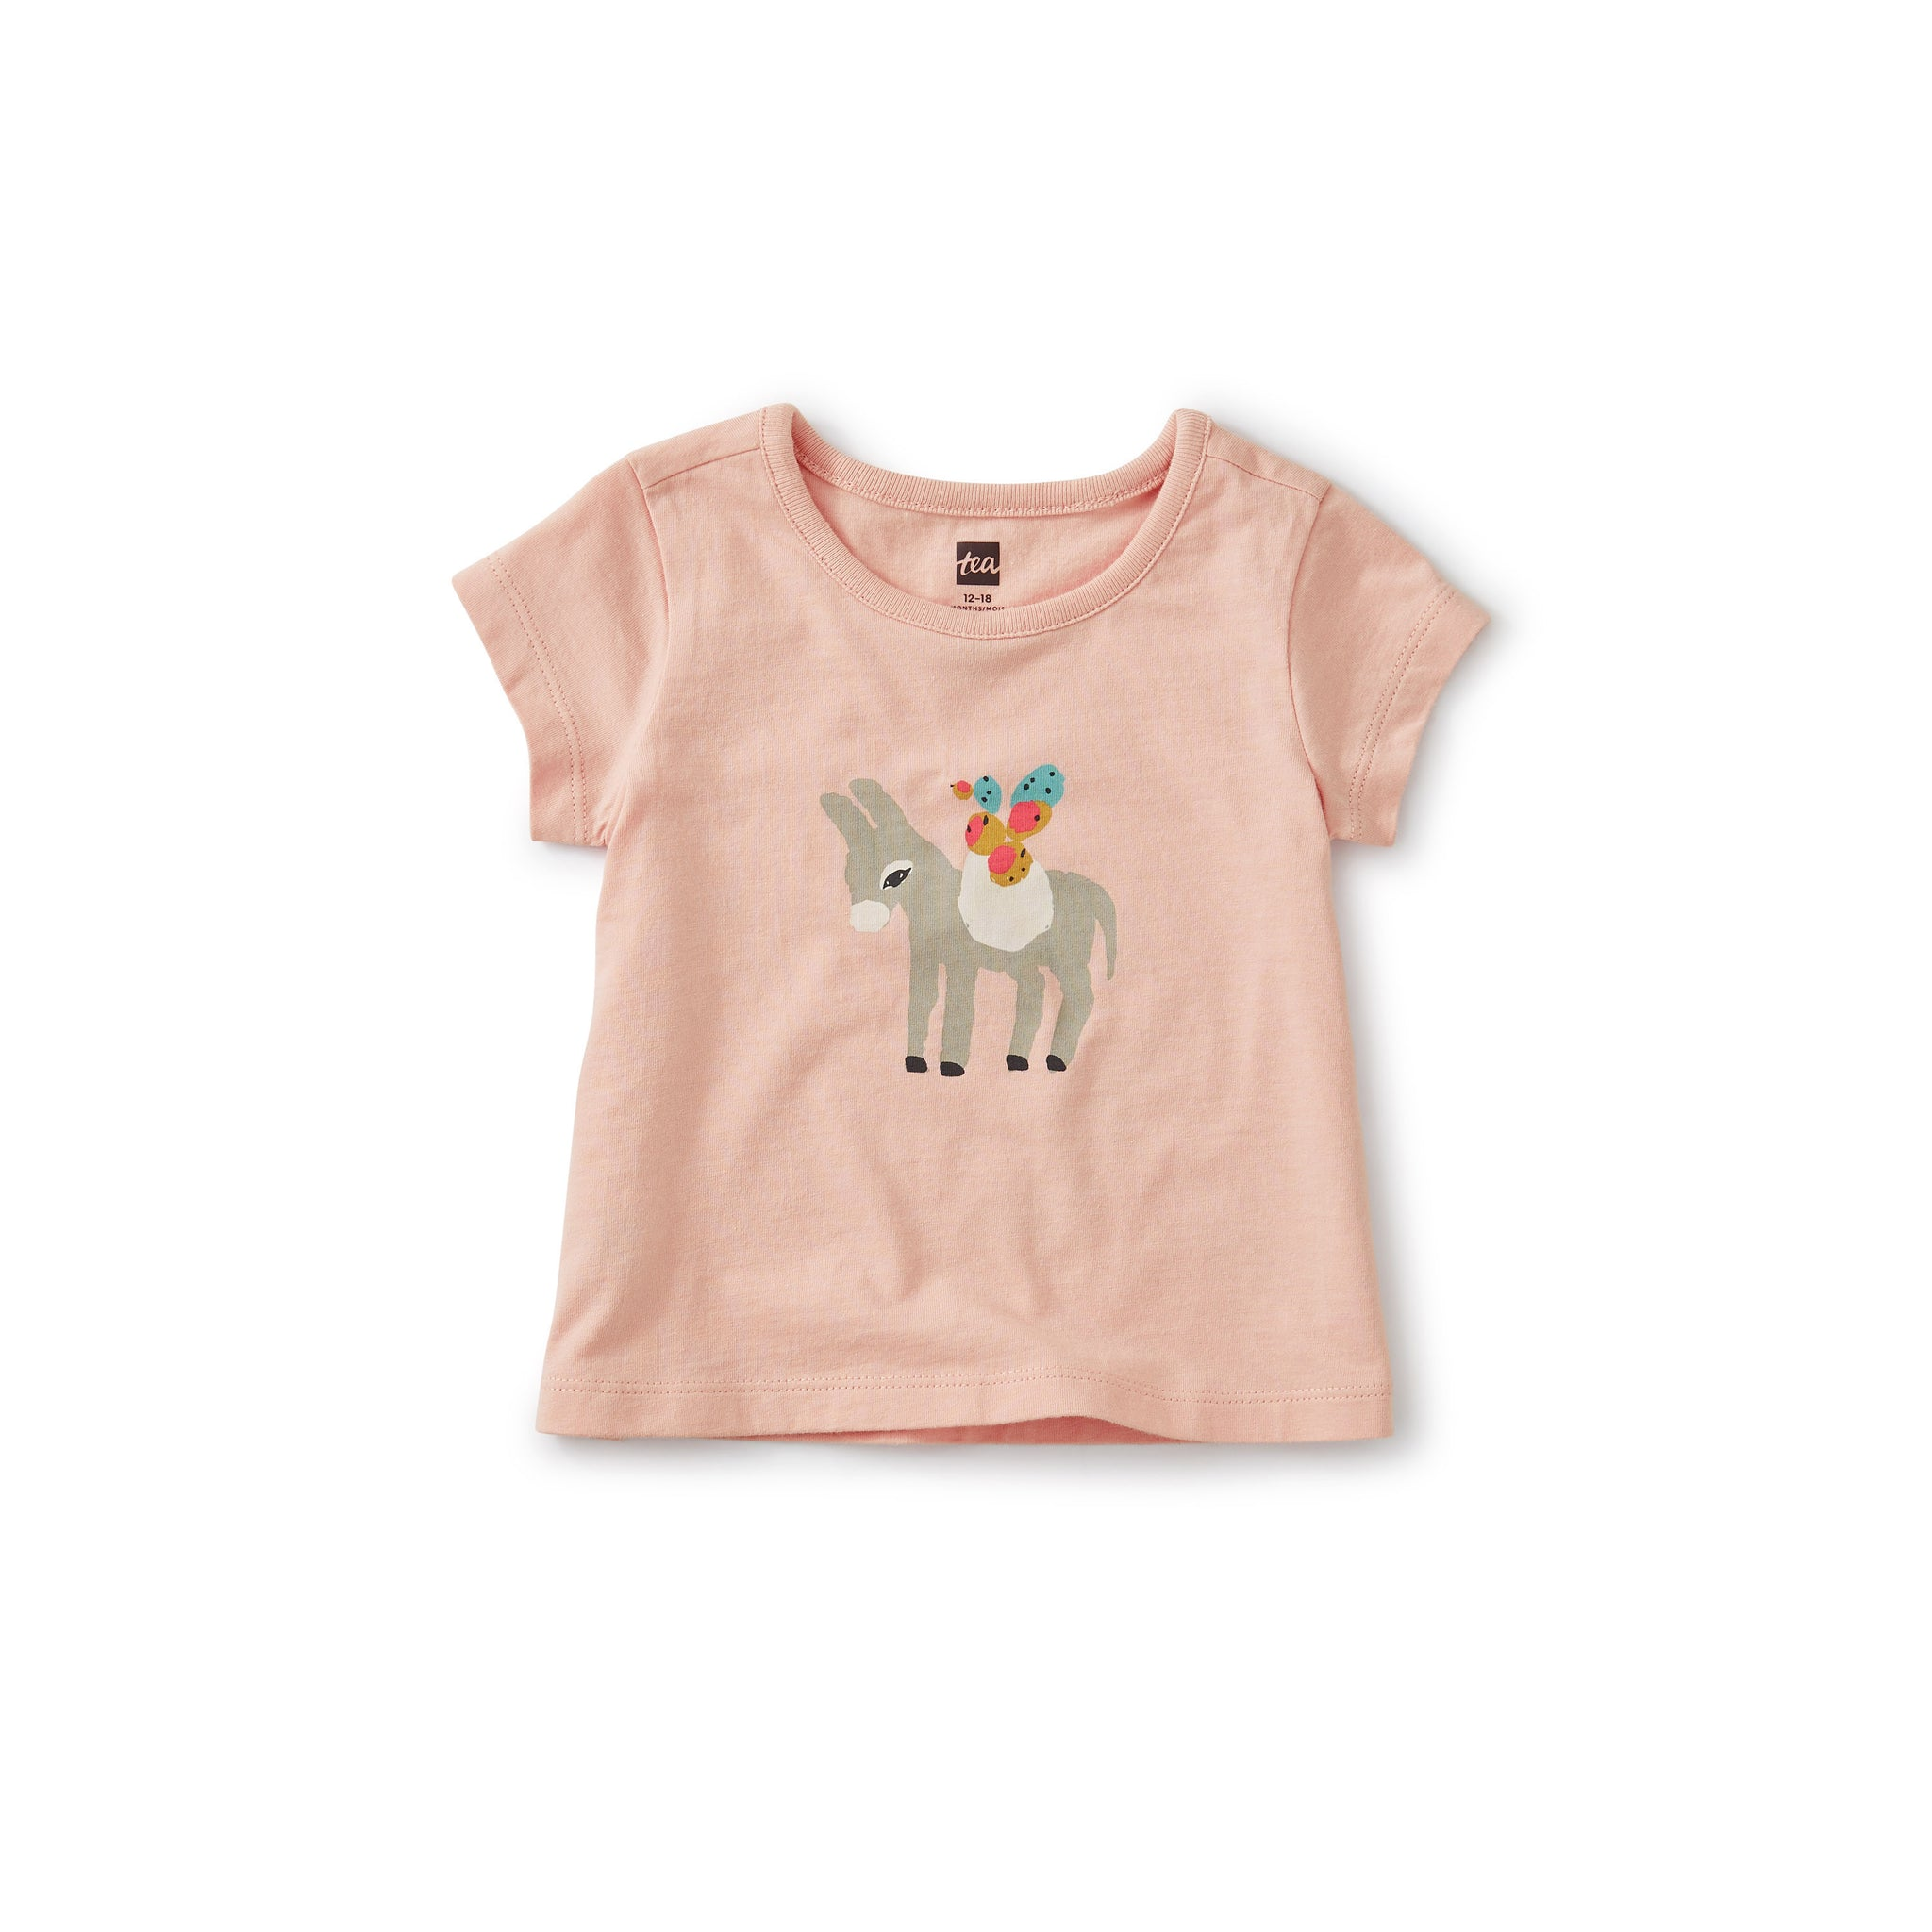 Donkey & Friends BFF Tee